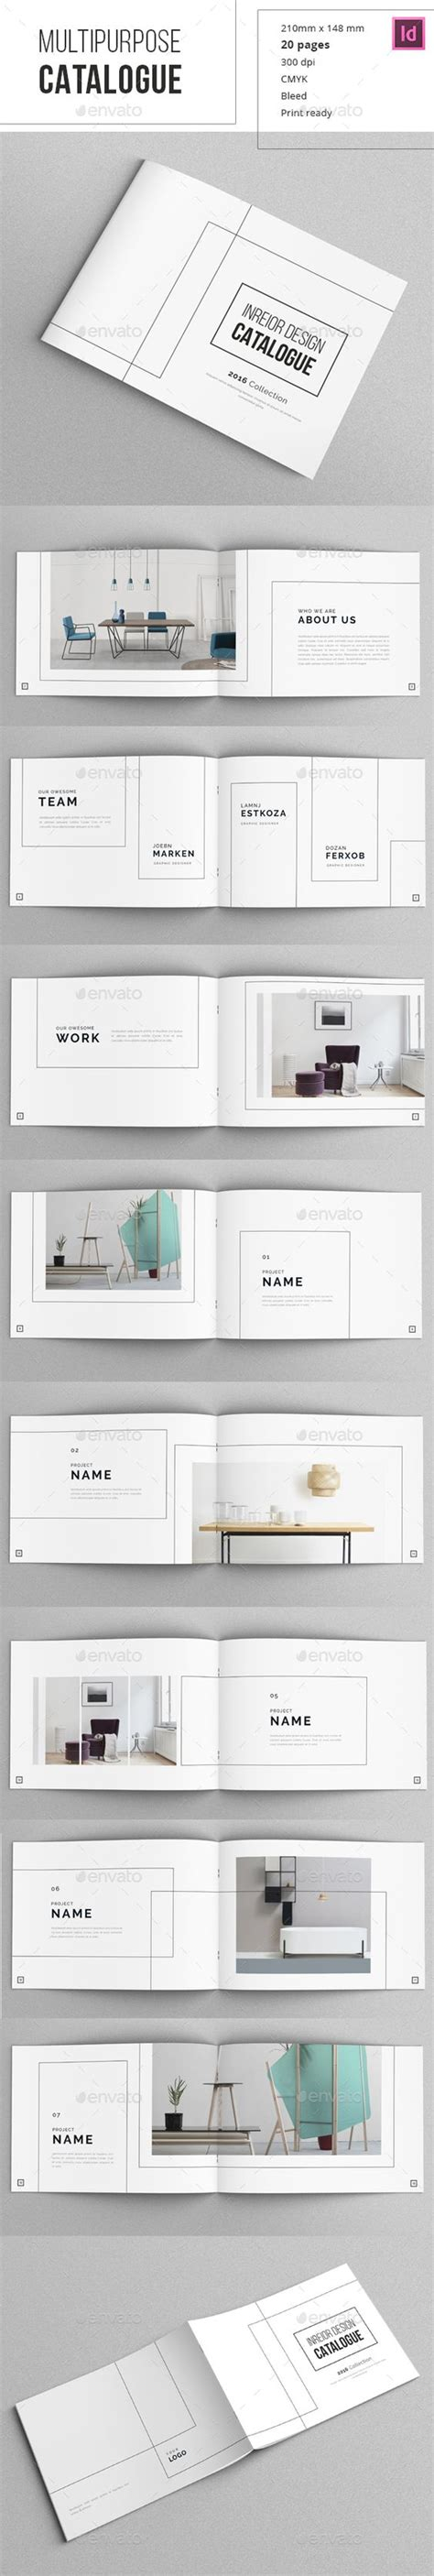 Indesign Catalogue Template by Minimal Indesign Catalogue Editorial Design Brochures